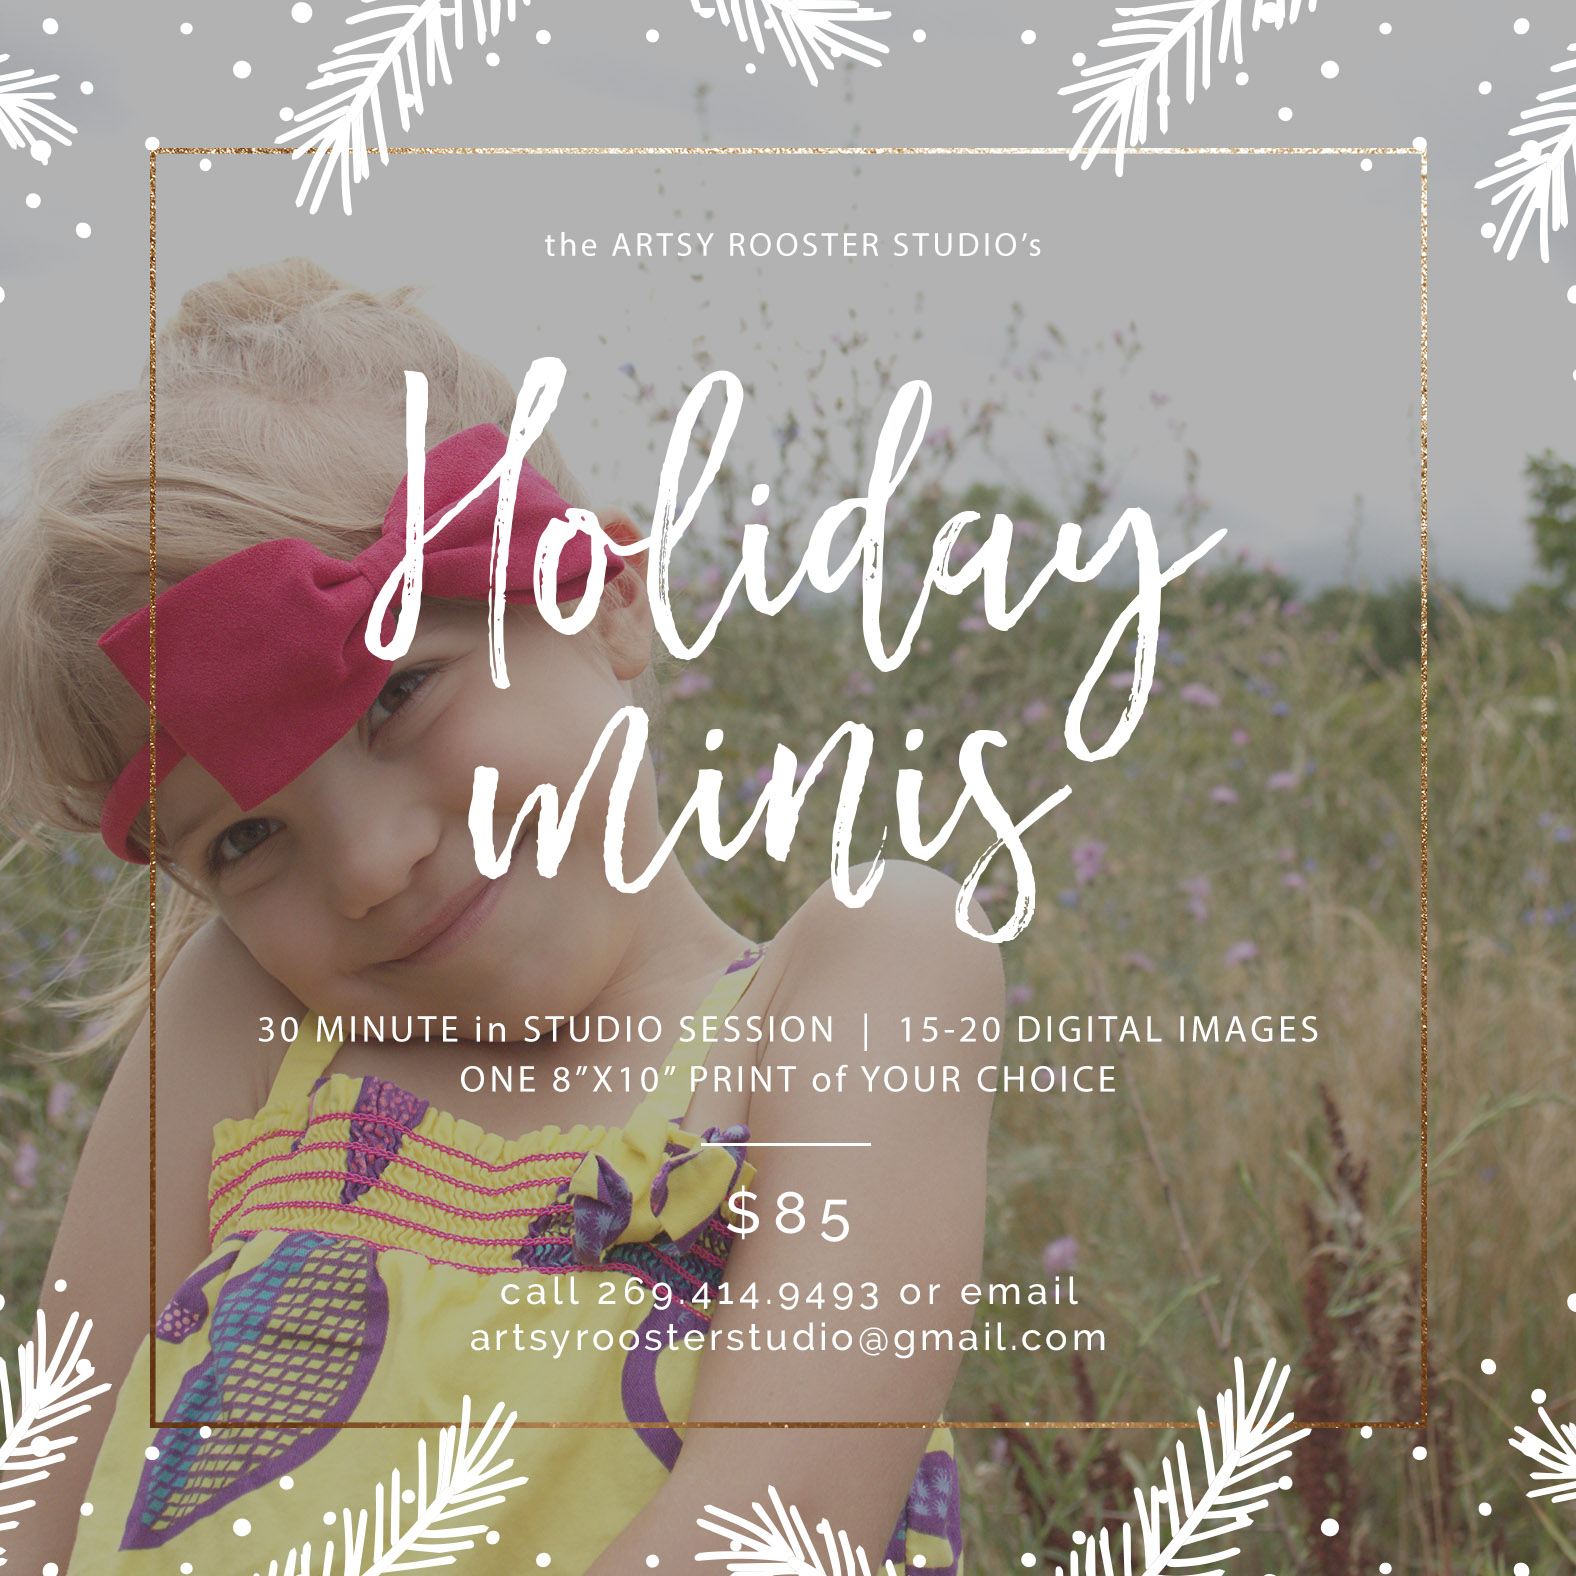 holiday-mini-session-2016-flyer-c-the-artsy-rooster-studio-llc